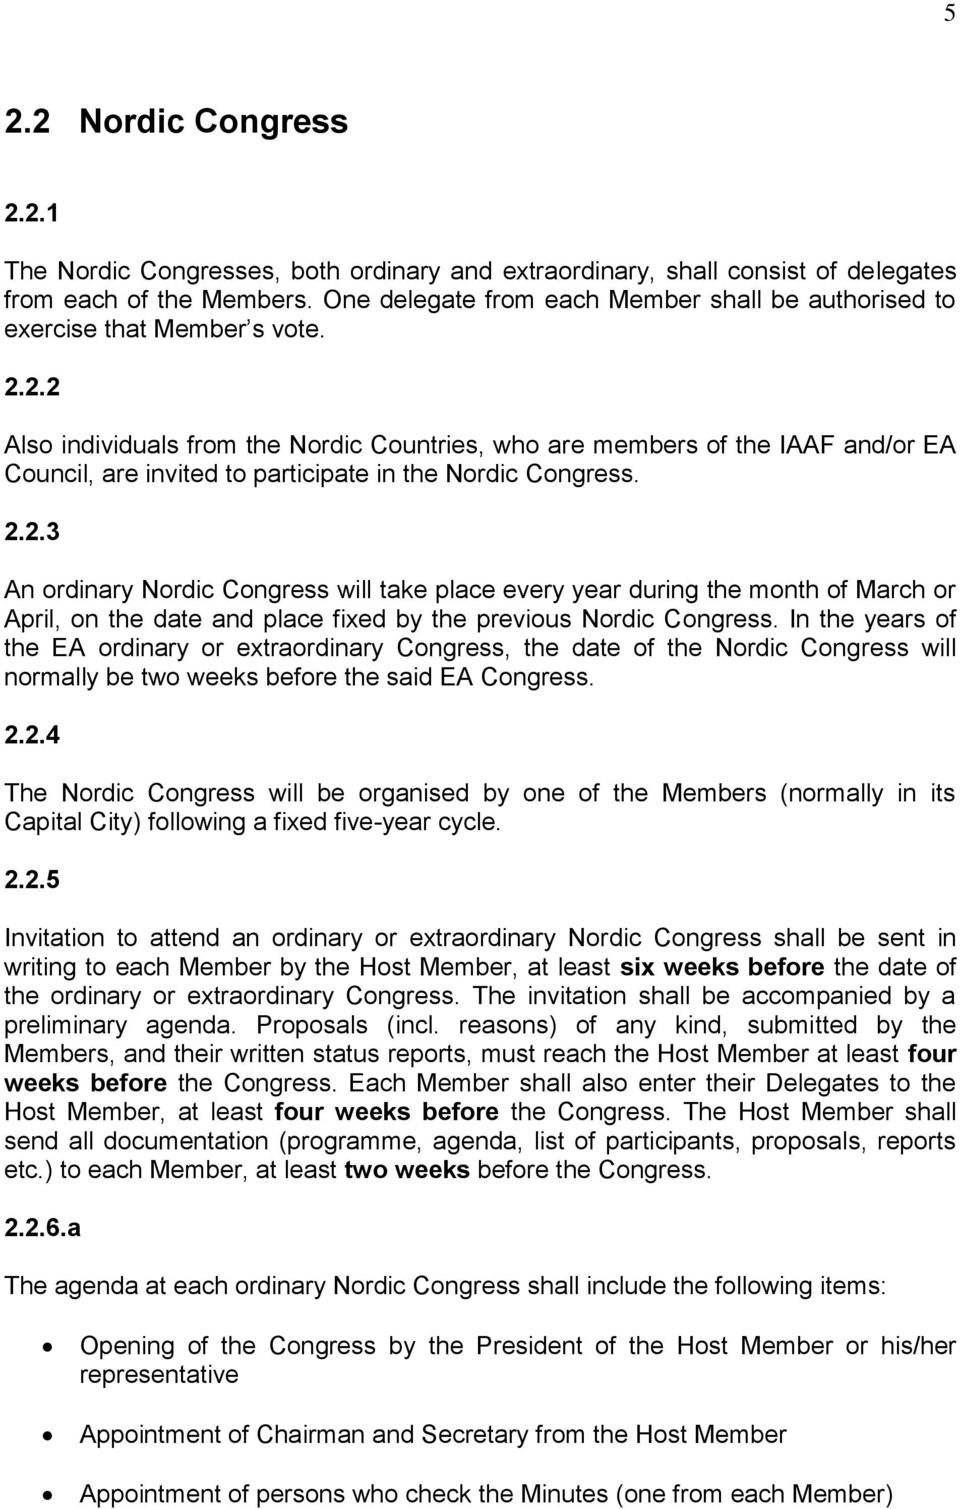 2.2 Also individuals from the Nordic Countries, who are members of the IAAF and/or EA Council, are invited to participate in the Nordic Congress. 2.2.3 An ordinary Nordic Congress will take place every year during the month of March or April, on the date and place fixed by the previous Nordic Congress.